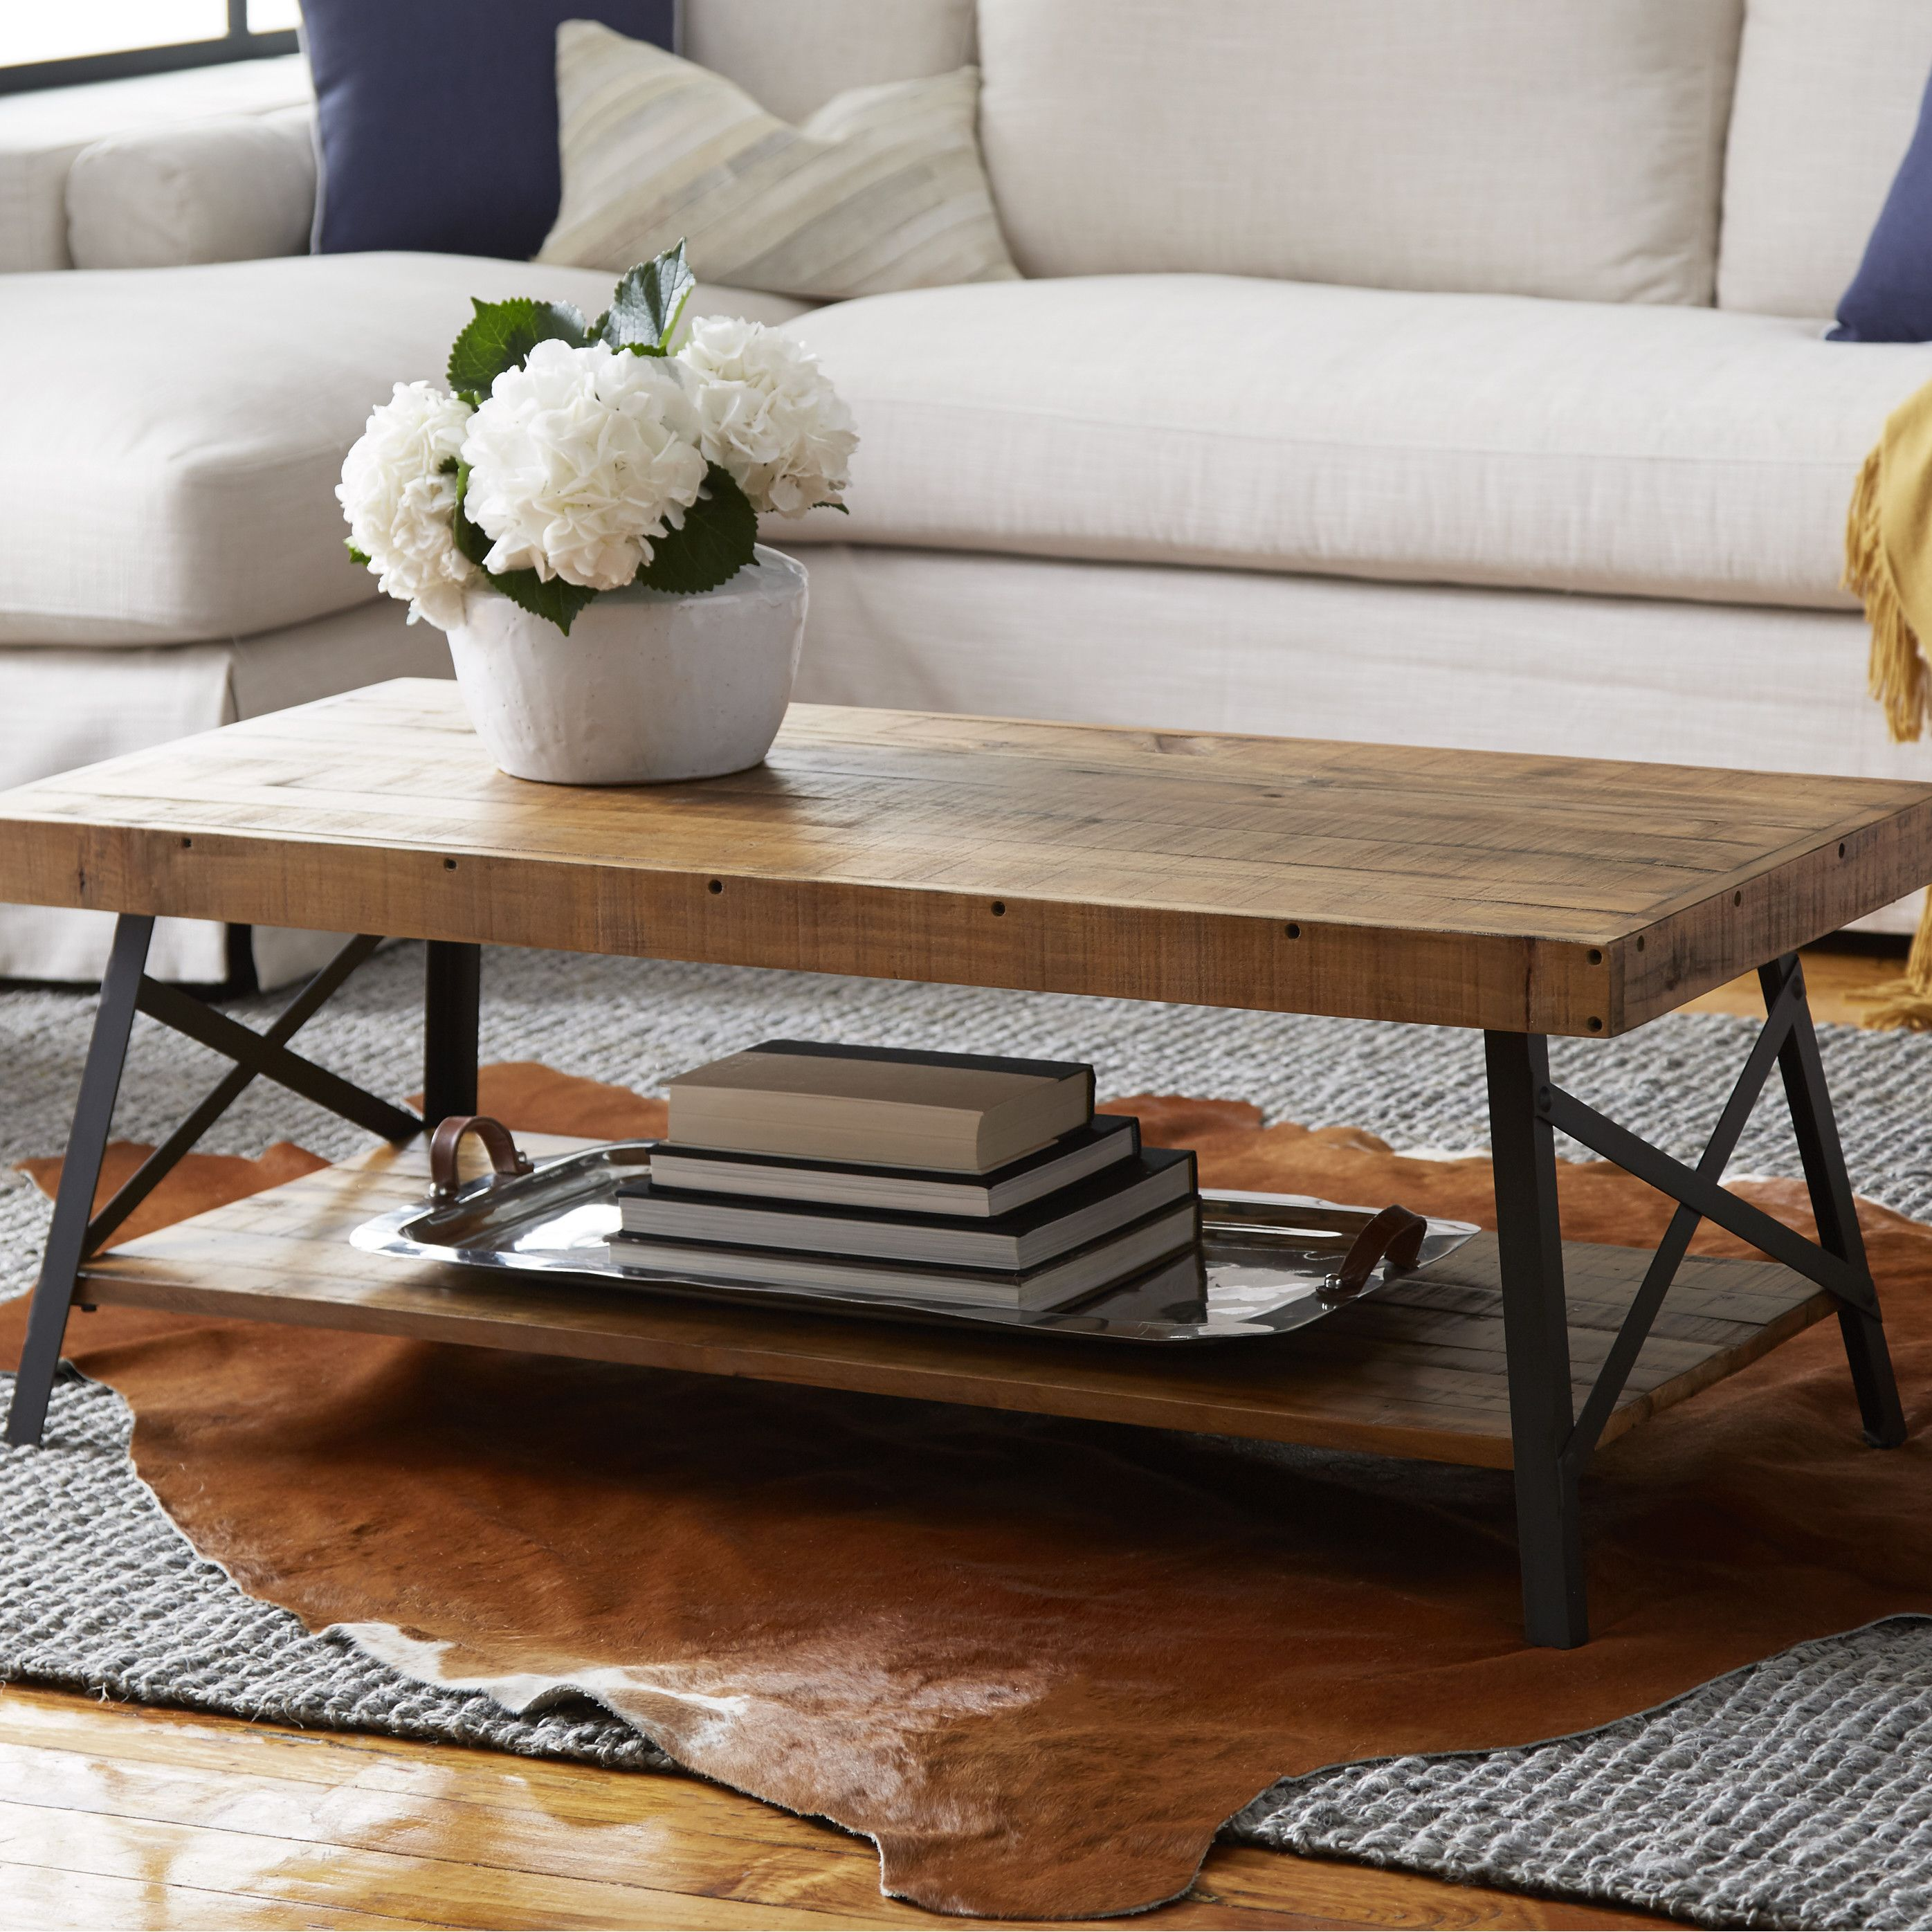 Trent Austin Design Skylar Coffee Table $195 at Joss & Main